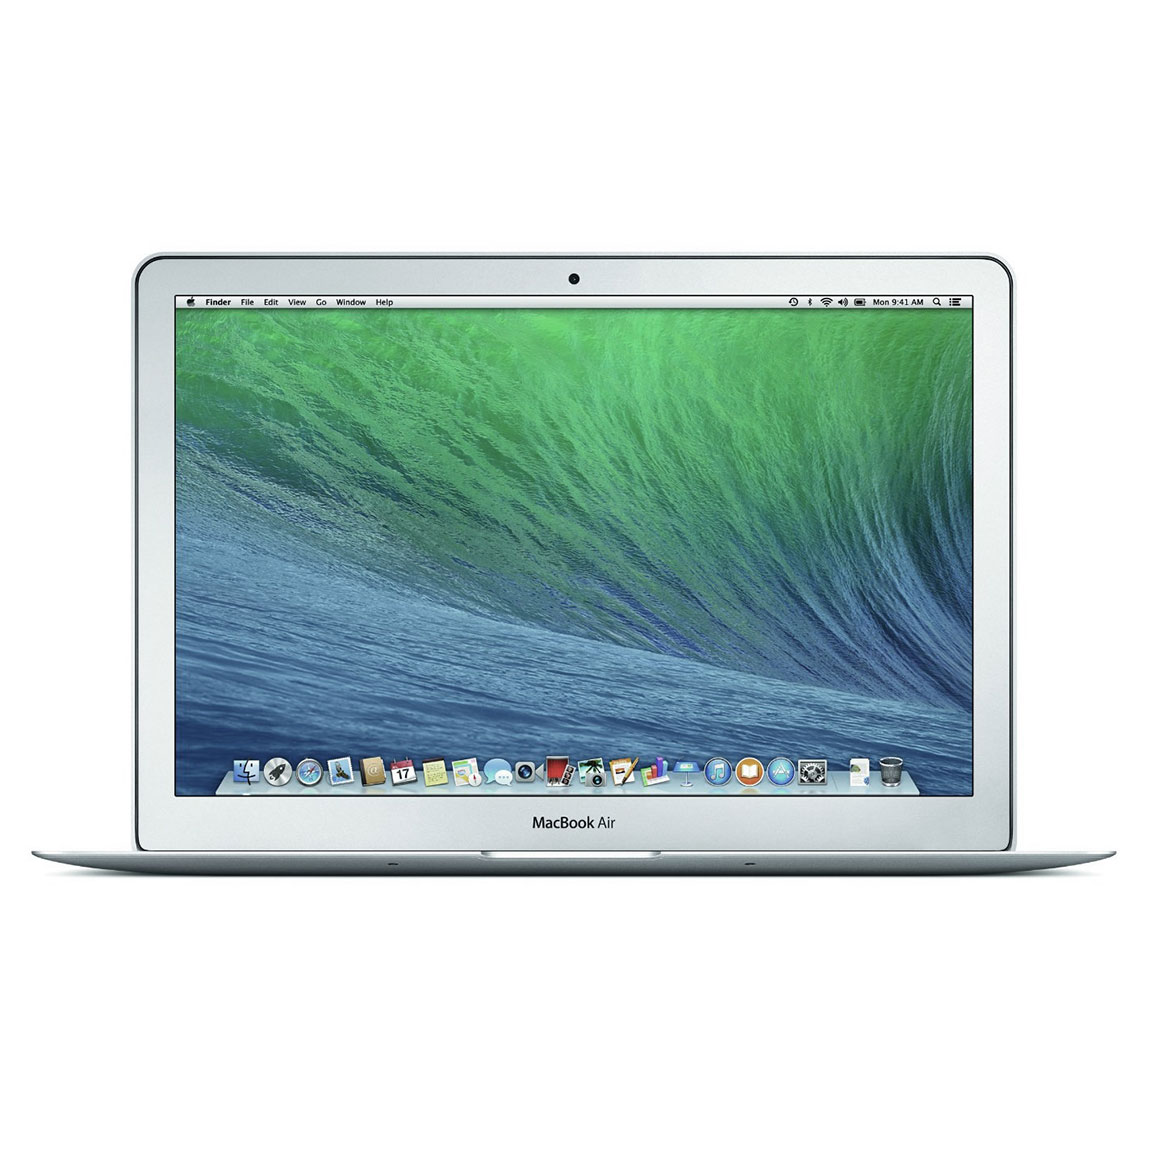 apple macbook pro mb990ll a 13.3 inch laptop review